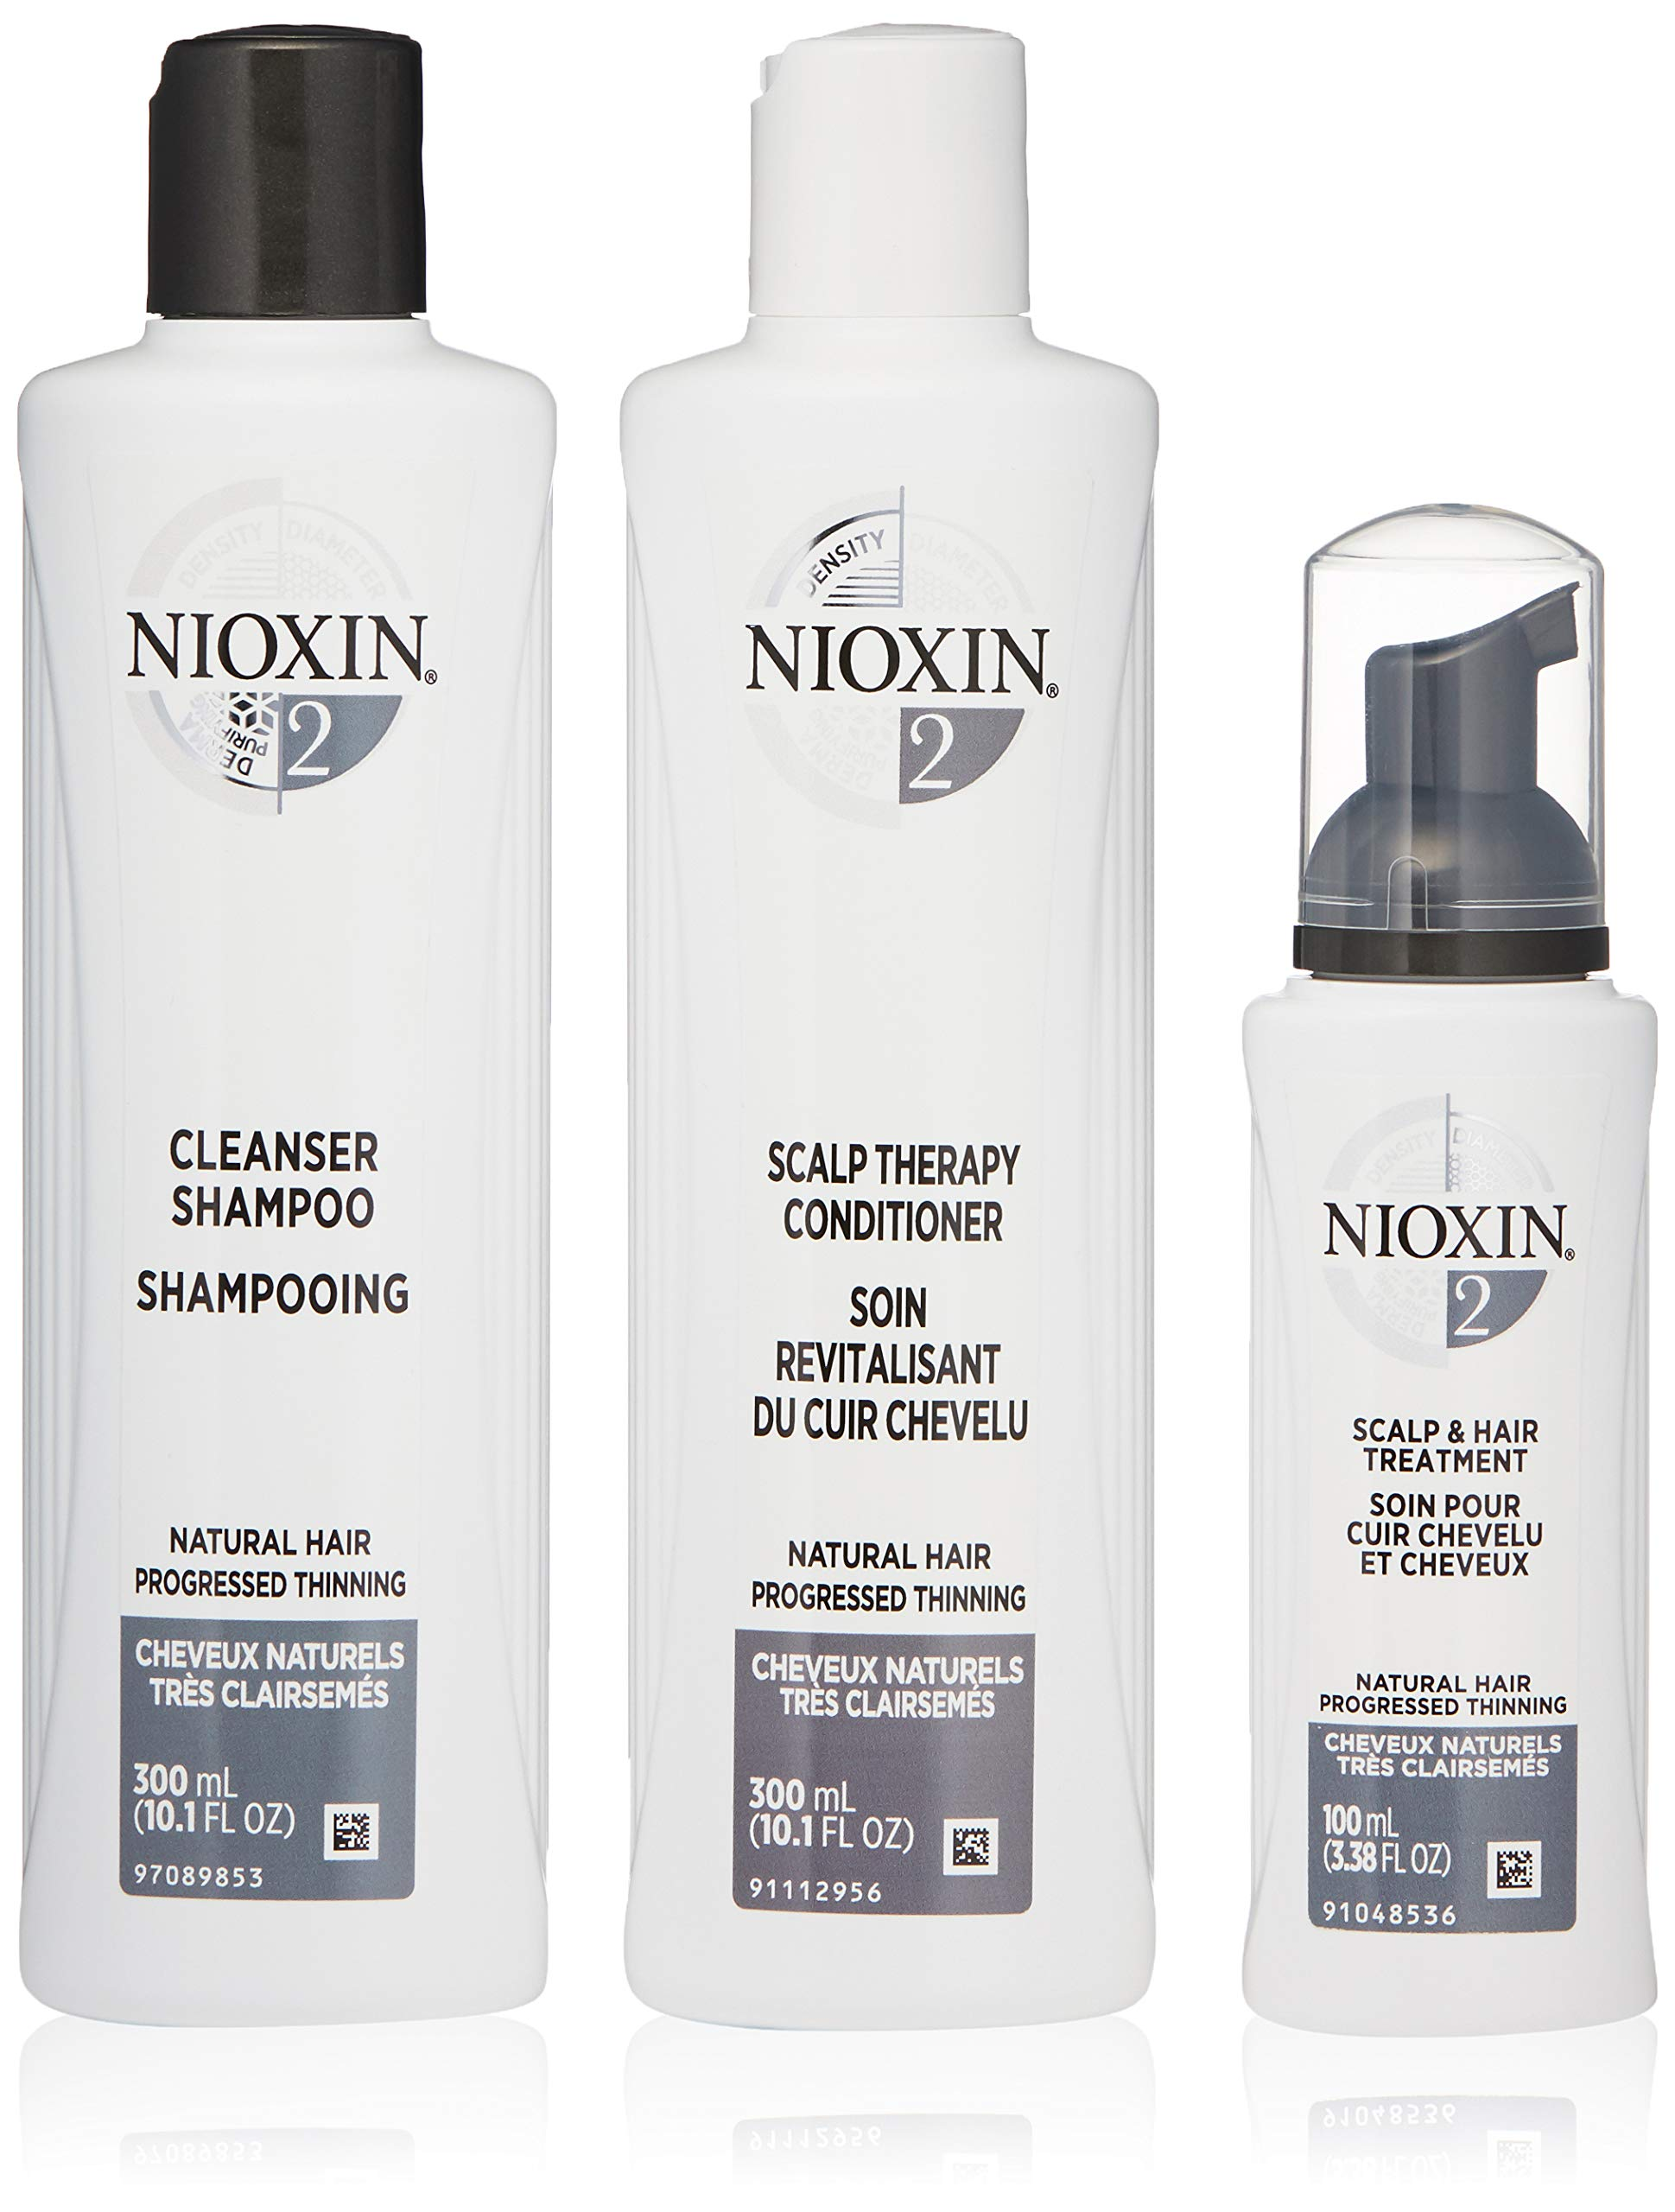 Nioxin Hair Care Kit System 2 for Fine Hair with Progressed Thinning, 3 Count by Nioxin